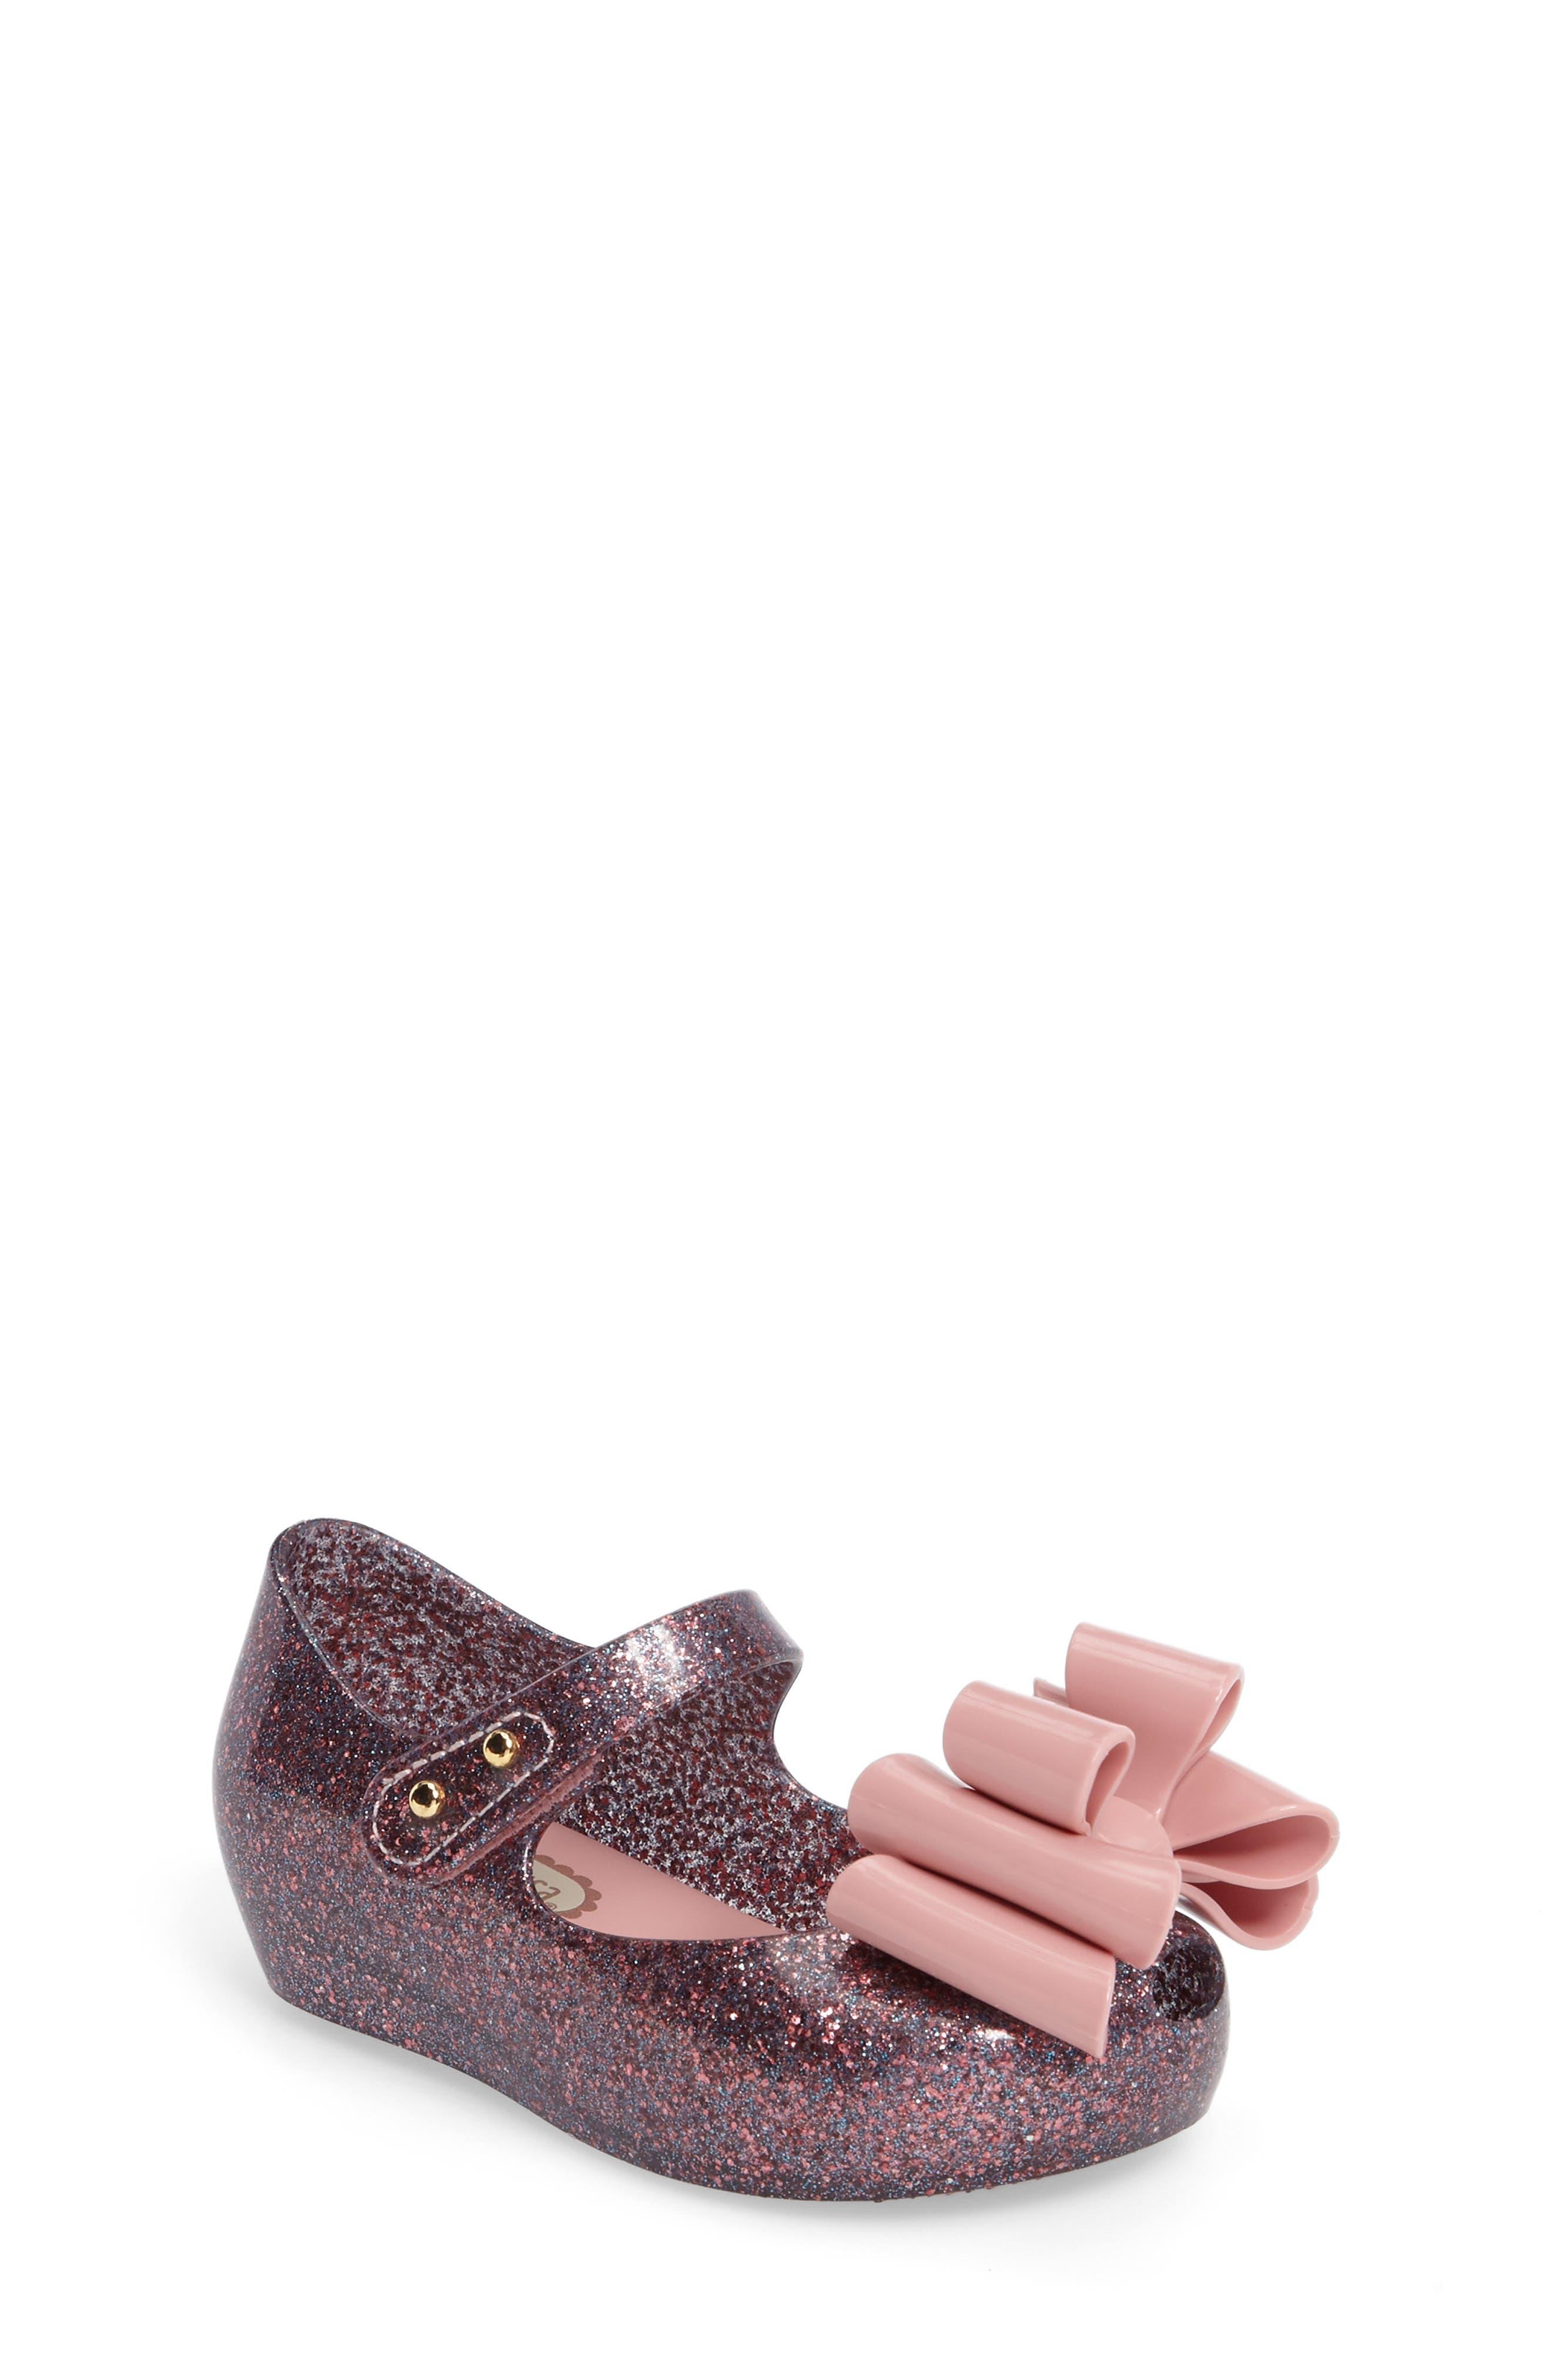 MINI MELISSA Ultragirl Sweet III Mary Jane Flat